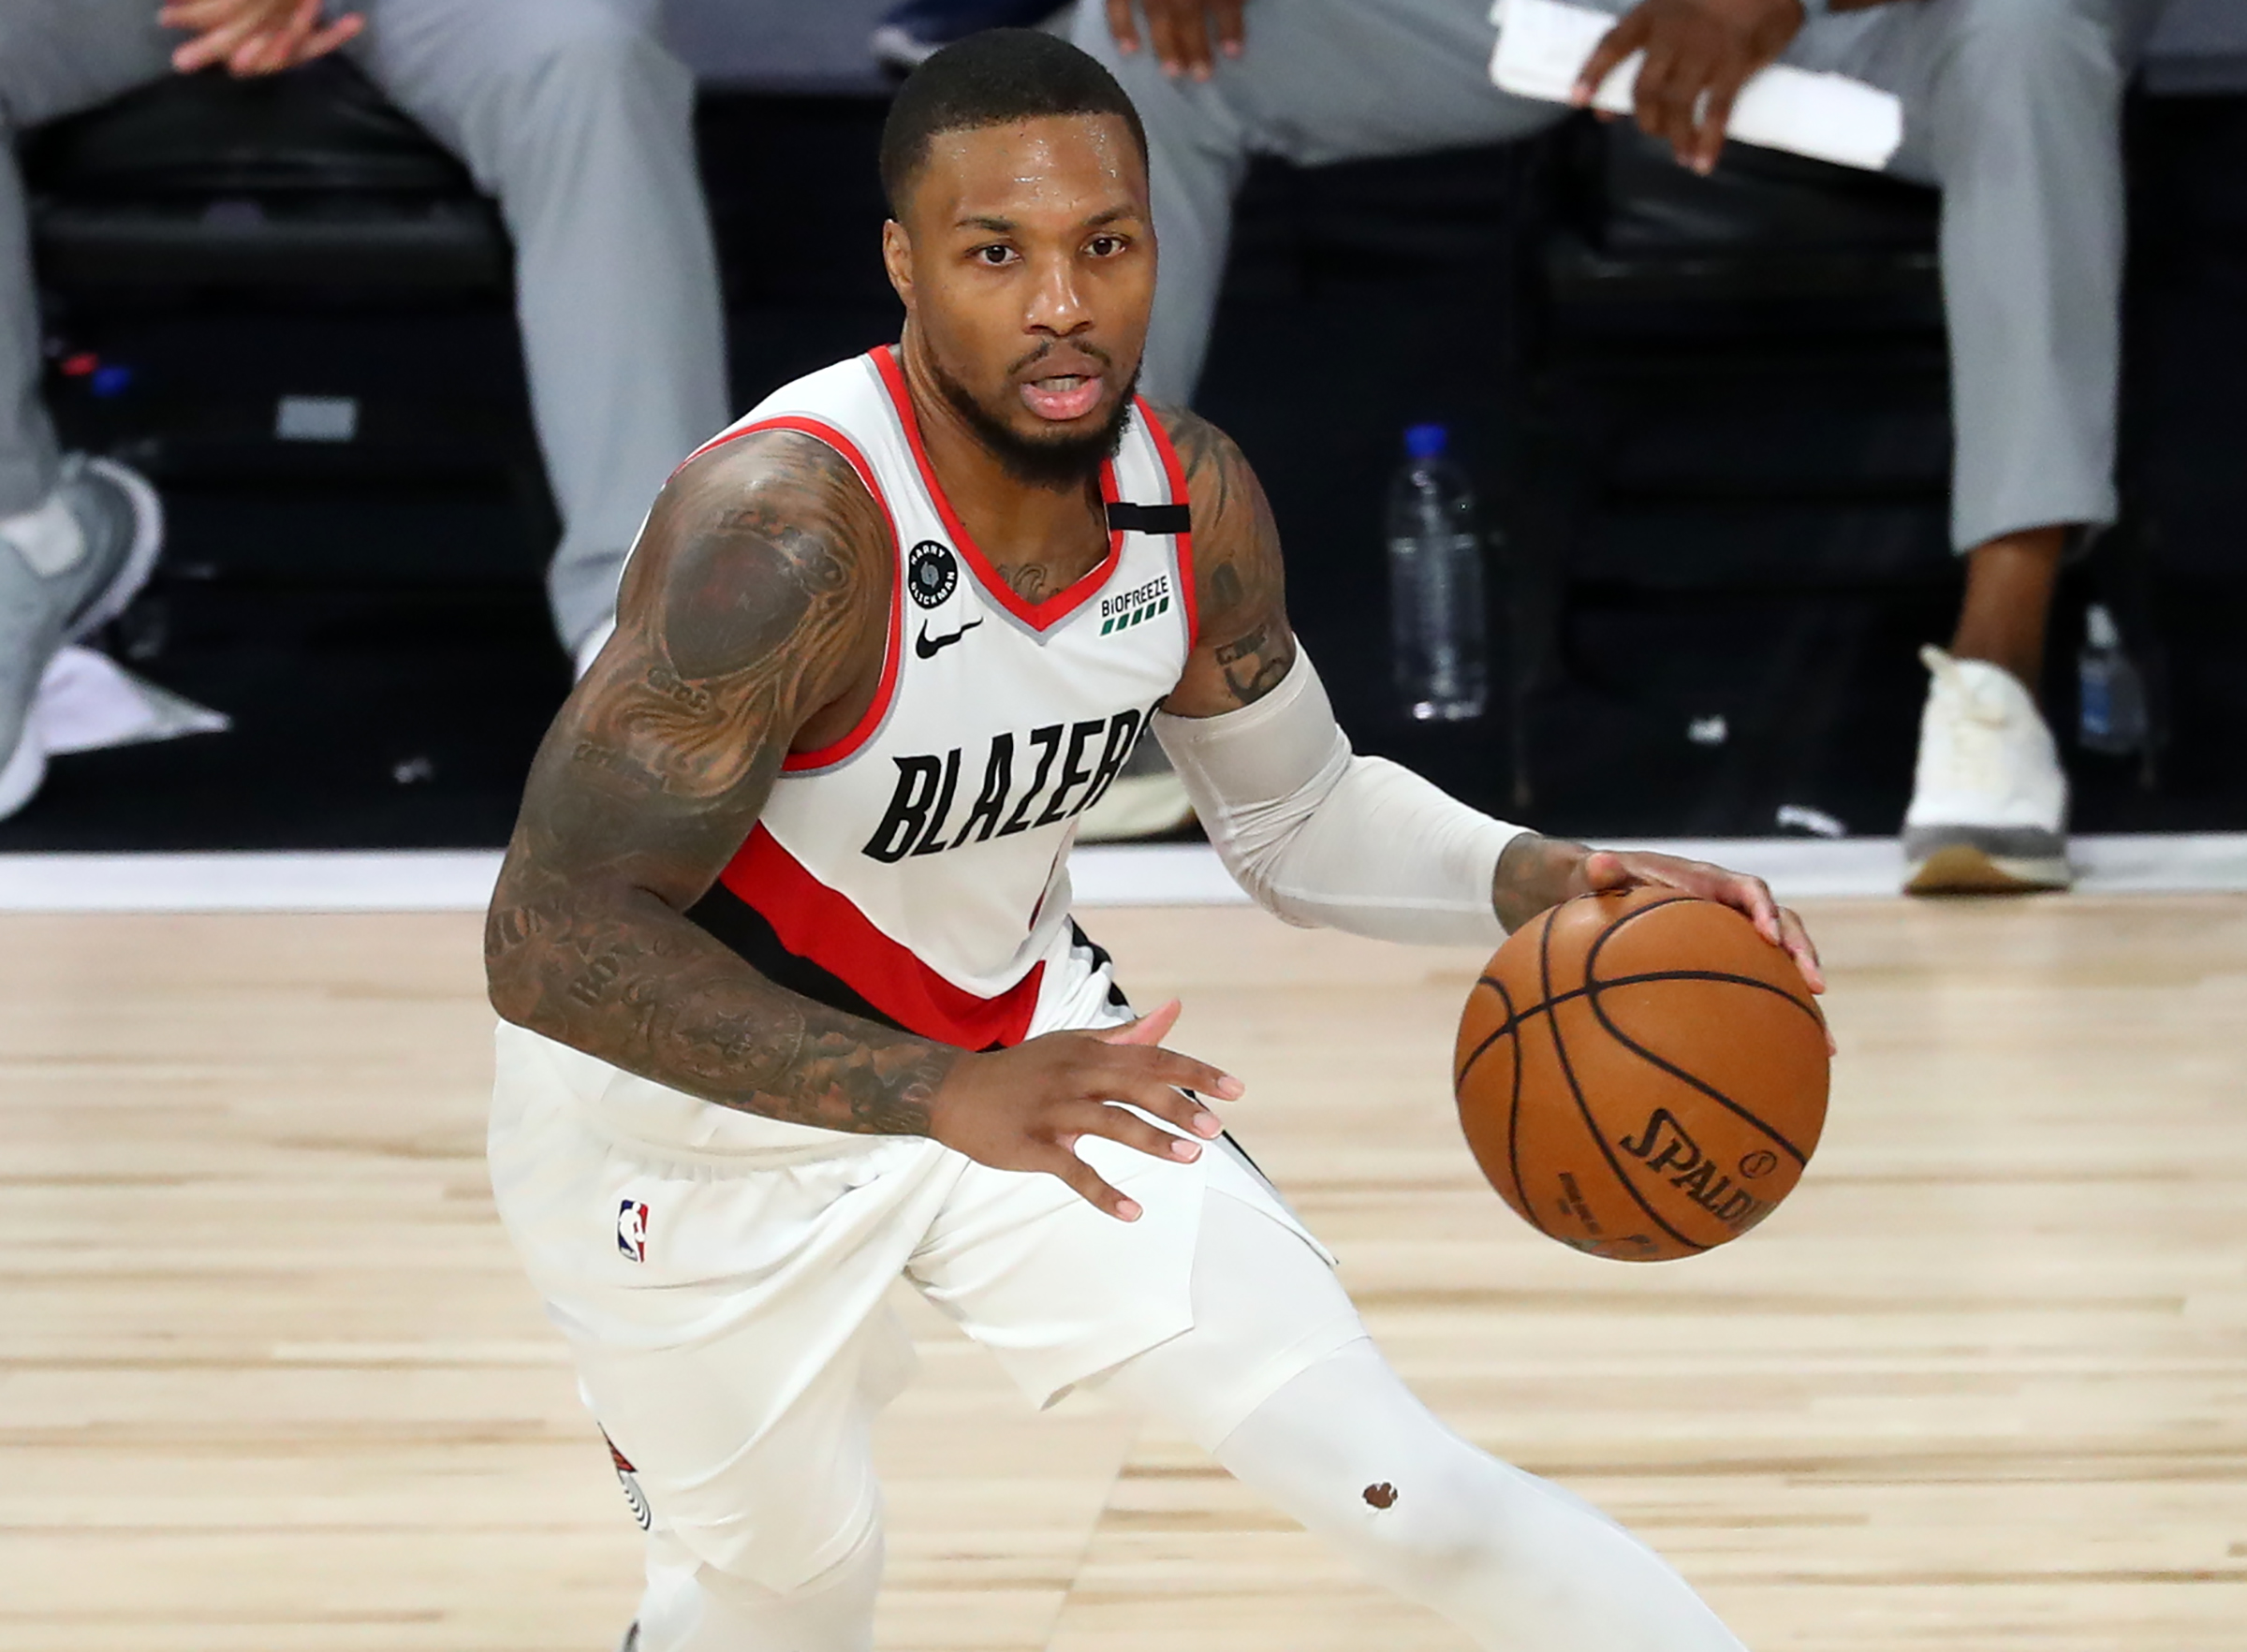 Portland Trail Blazers guard Damian Lillard dribbles during the second half against the LA Clippers in an NBA basketball game at HP Field House at ESPN Wide World Of Sports Complex on August 8, 2020 in Lake Buena Vista, Florida.